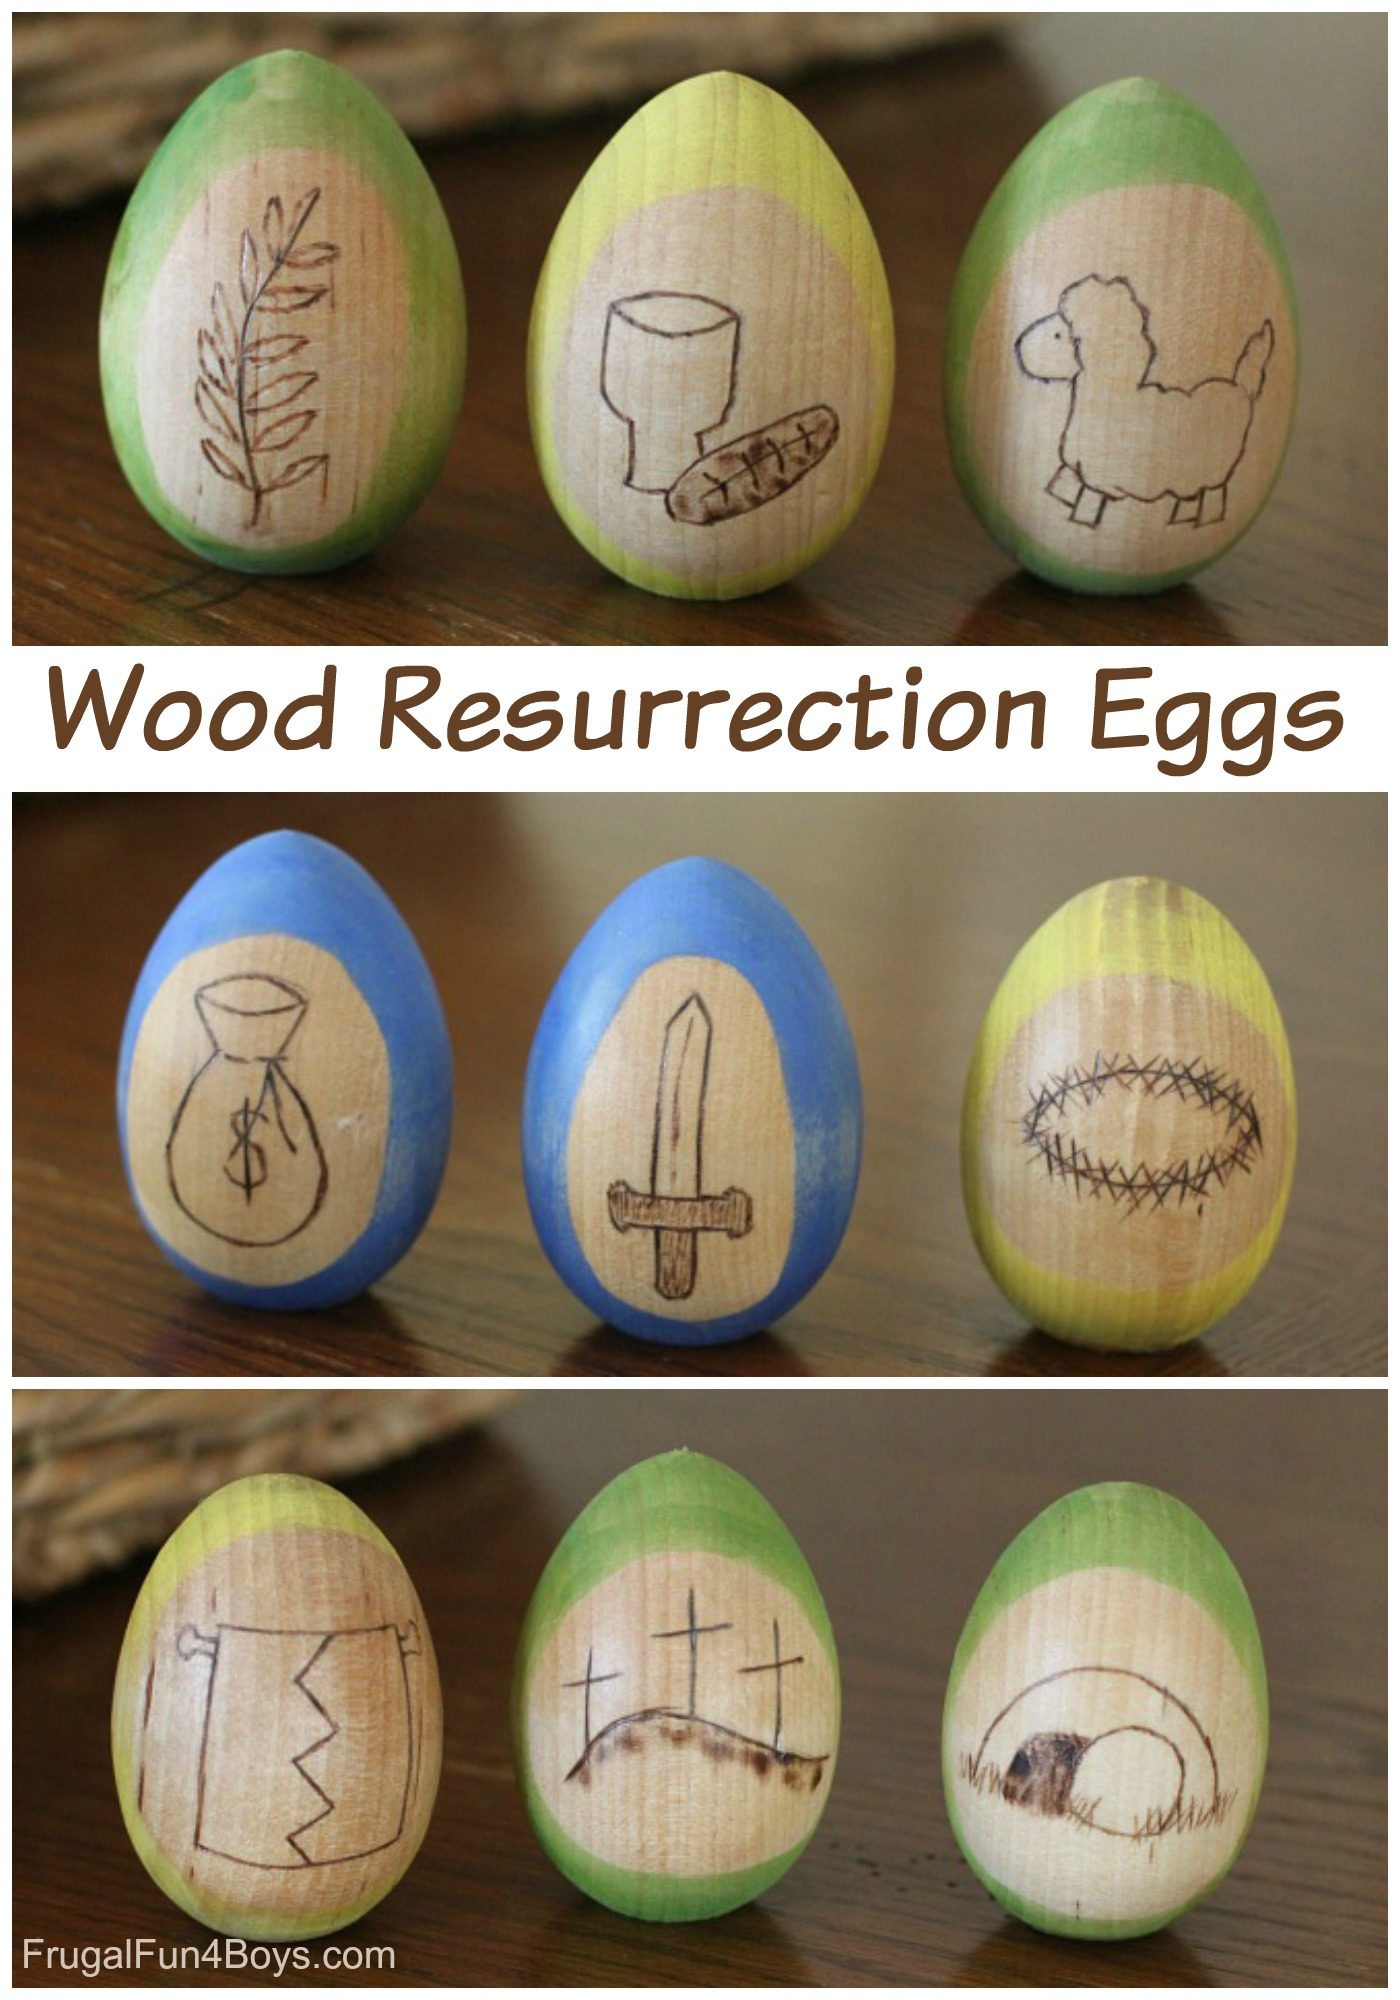 Wood Resurrection Eggs - Tell the Easter Story